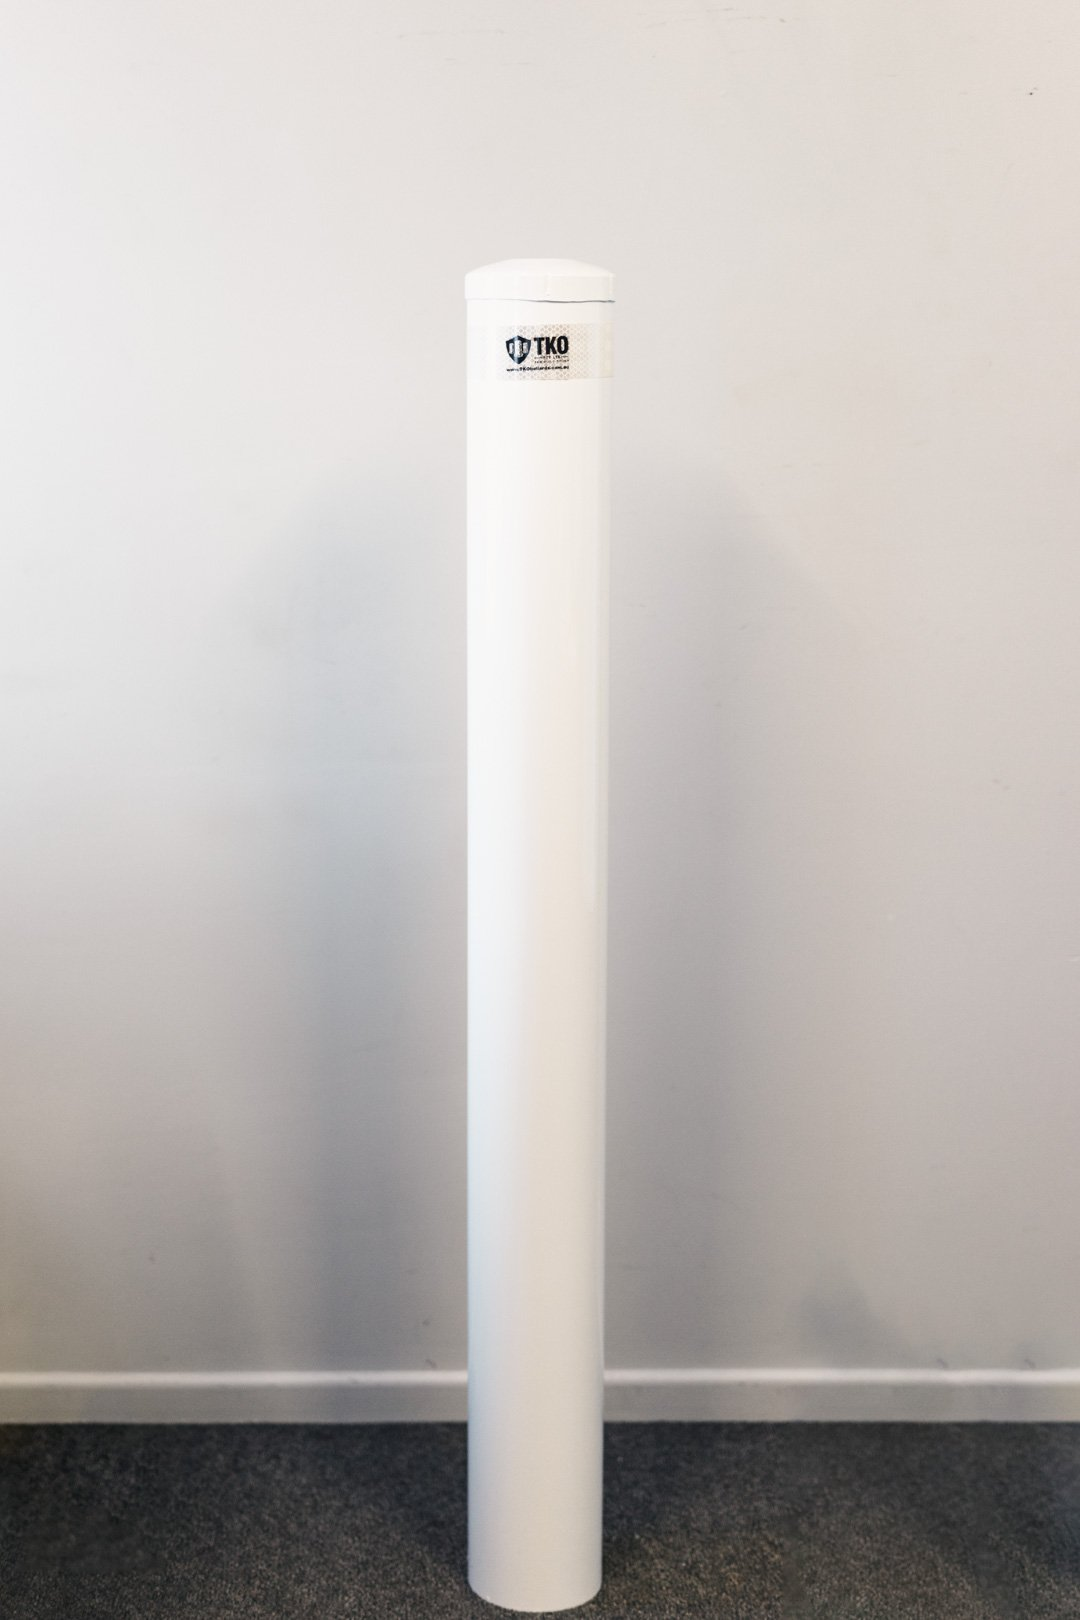 165 OD/mm In-Ground - White Powder Coated Bollard - 1350mm High - Brisbane bollards